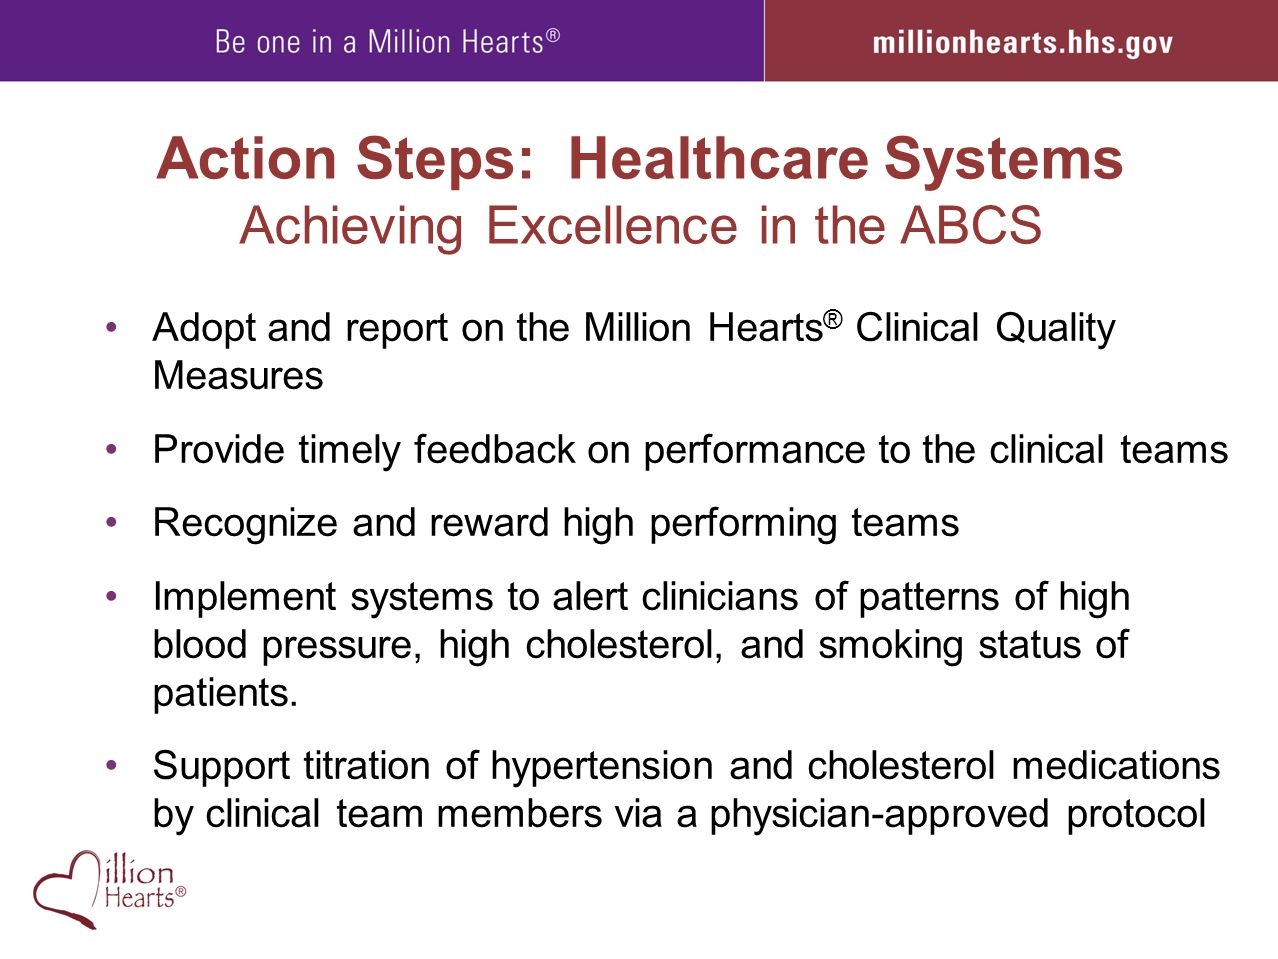 Action Steps: Healthcare Systems Achieving Excellence in the ABCS